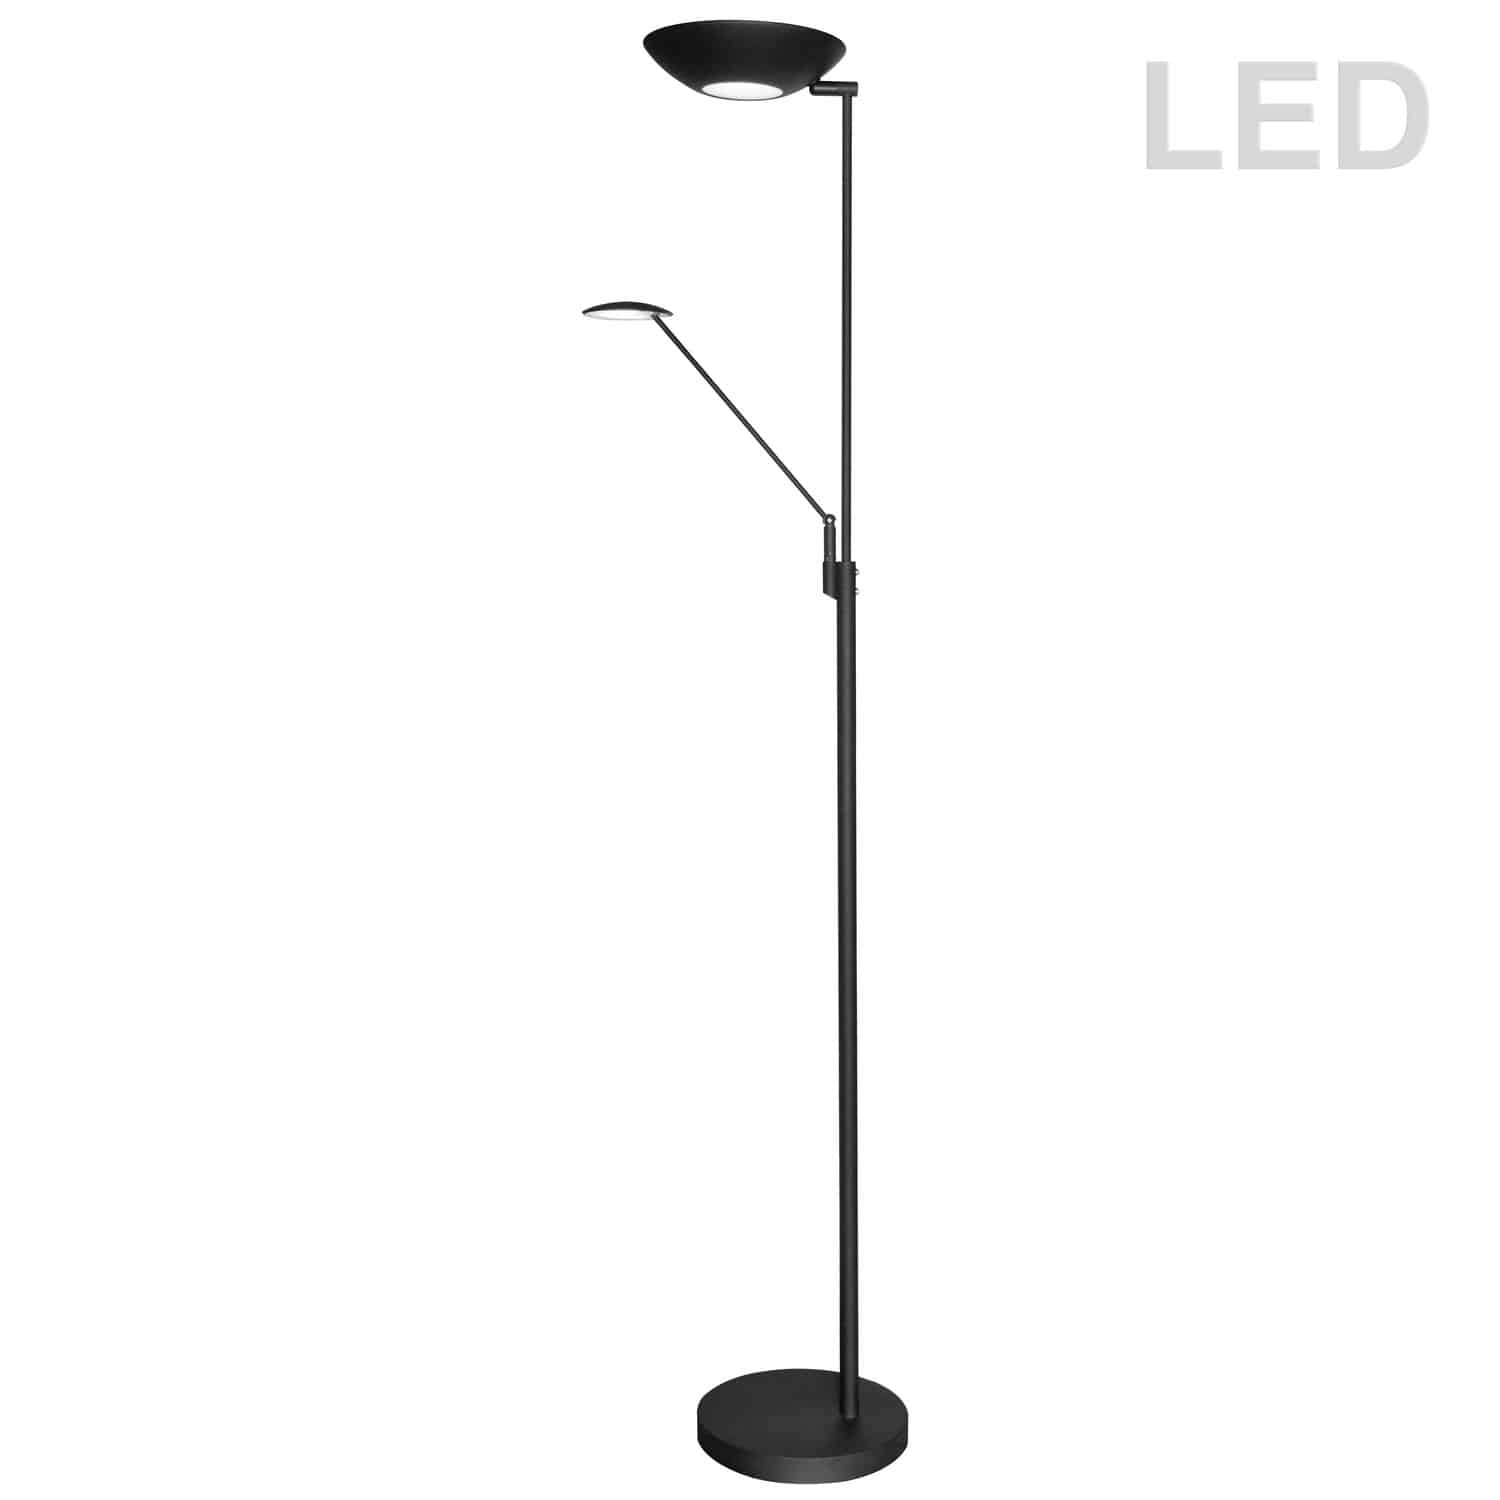 Mother & Son LED Floor Lamp, Black Finish